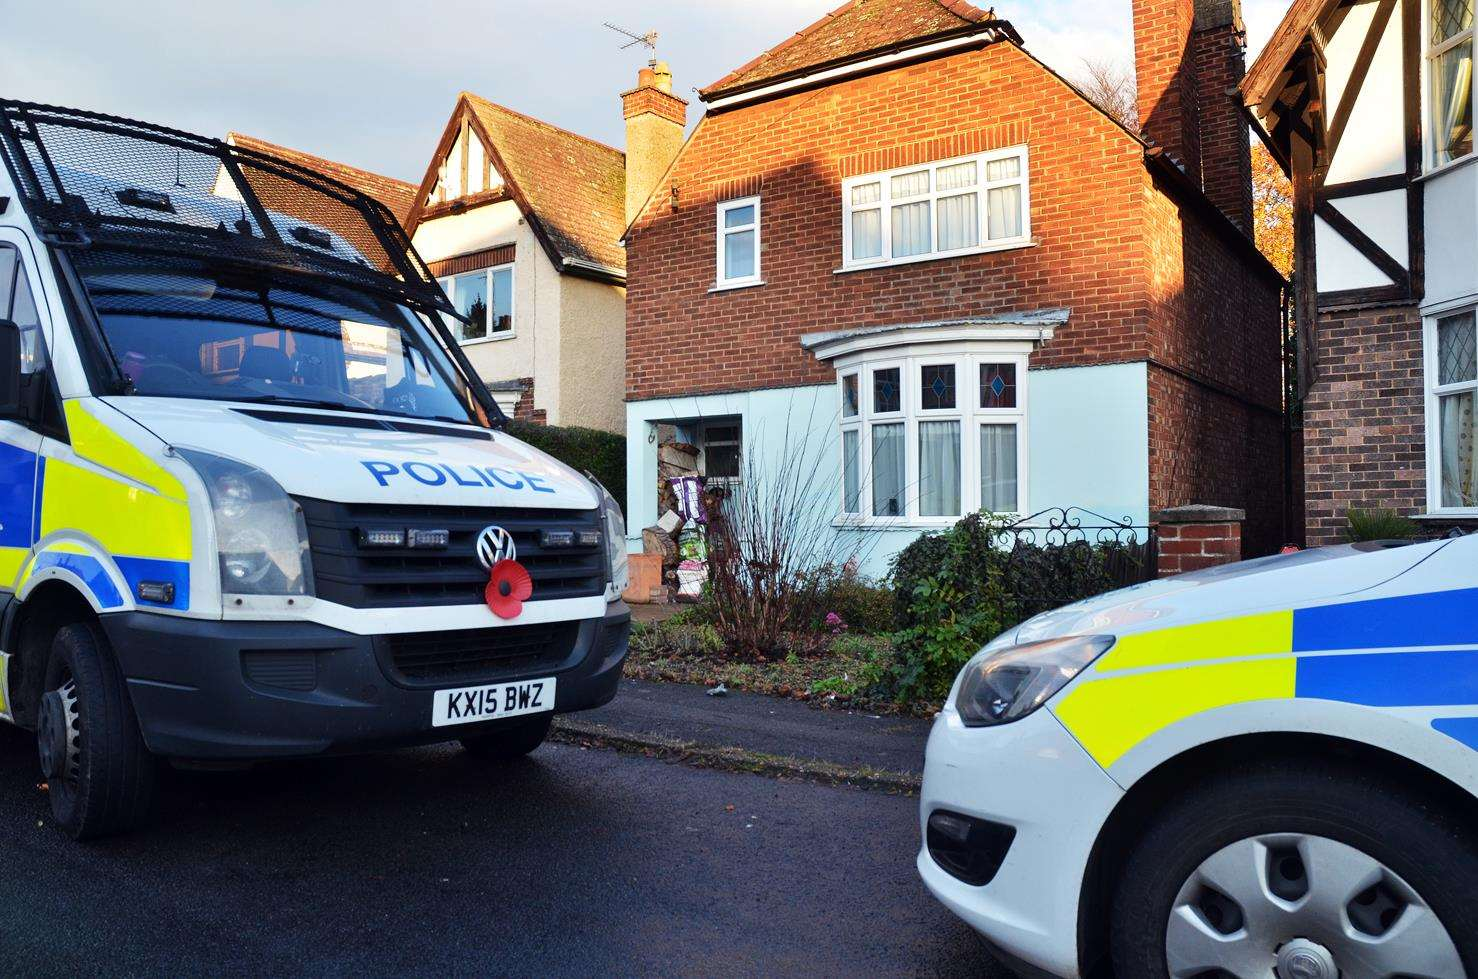 Police vehicles outside a house in Neville Avenue, Spalding, where the body of a 49-year-old man was found on Sunday morning. Photo: SG-261118-014TW. (5619127)